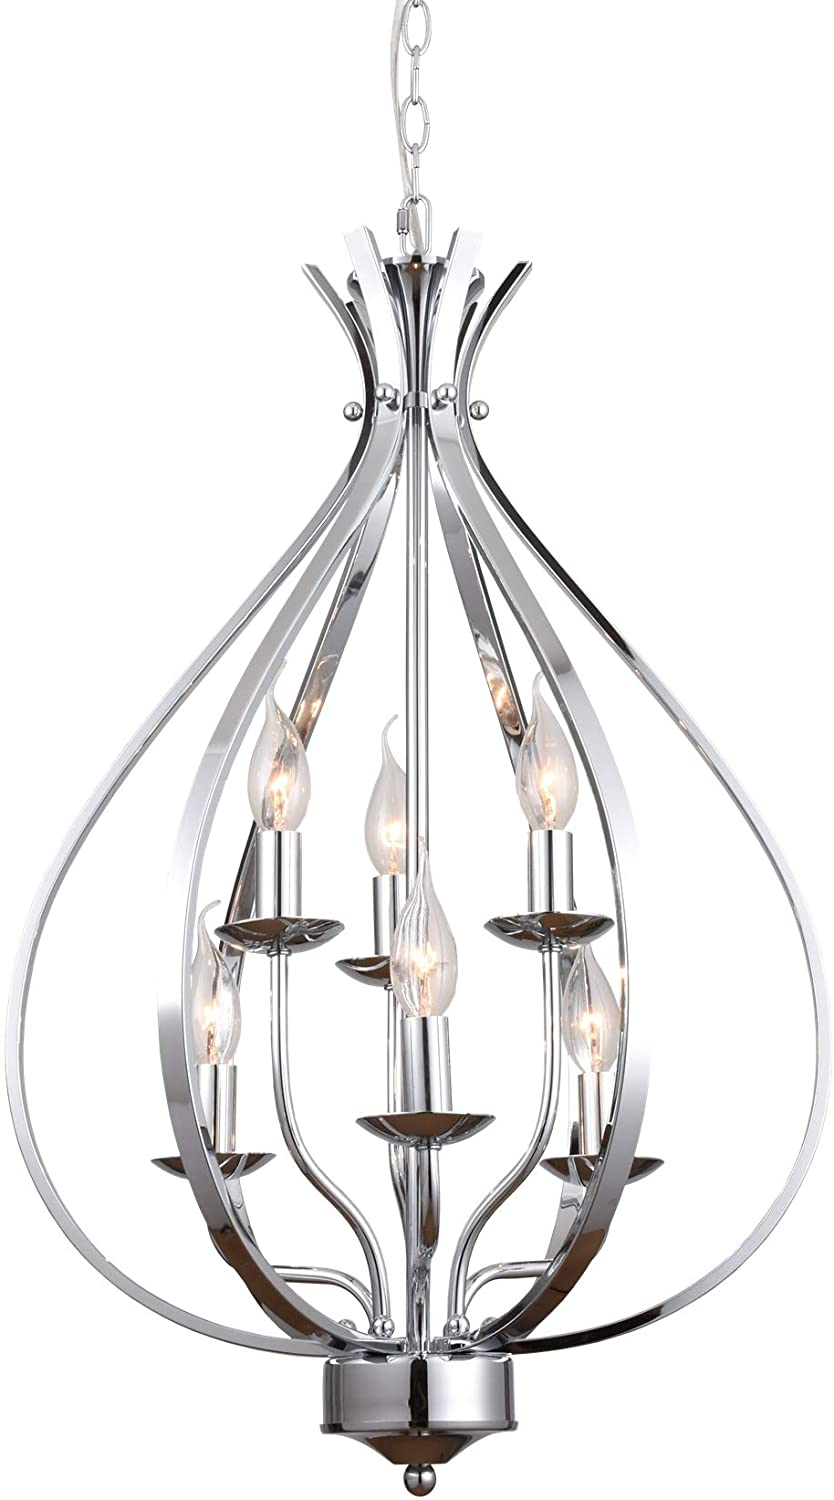 ALICE HOUSE 6 Light Entryway Chandelier, Chrome Foyer Lighting Fixture, Dining Room Pendant Light with 72 Chain AL13091-H6